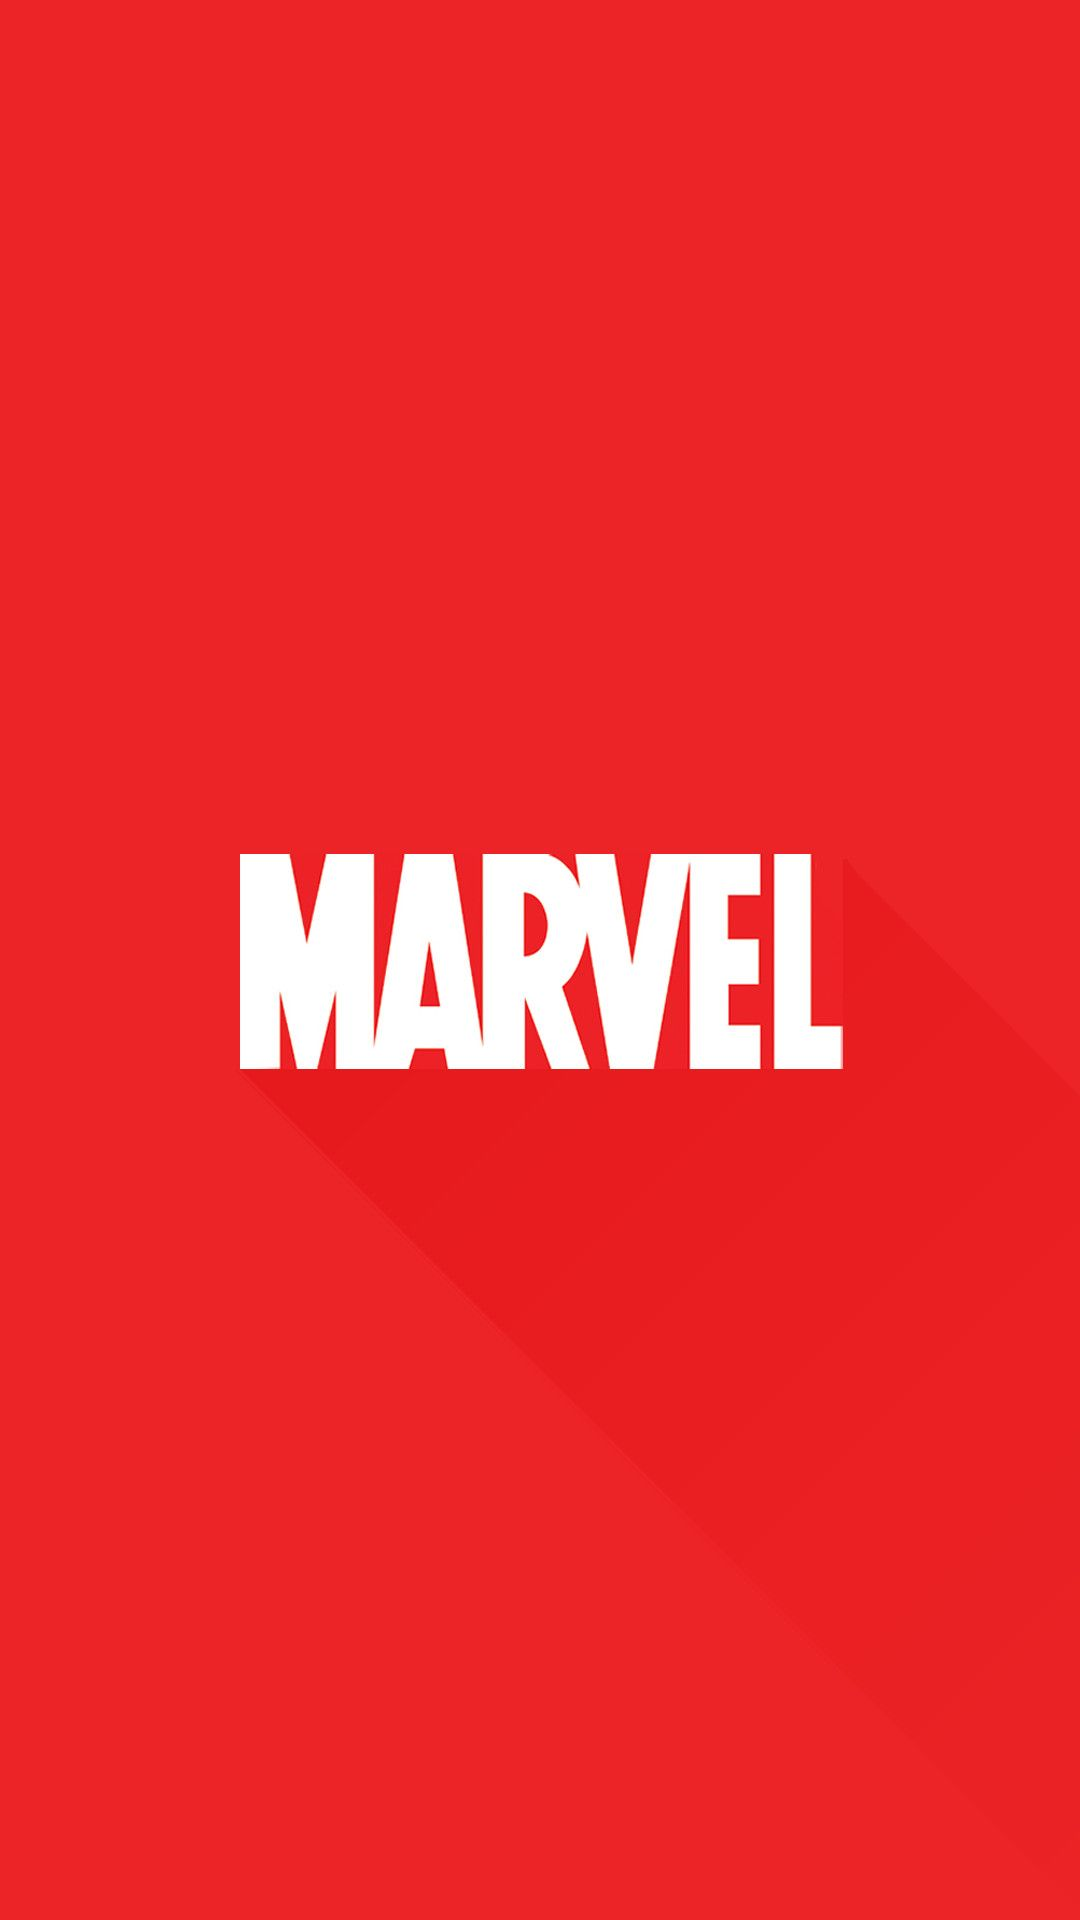 1080x1920 Marvel Logo Marvel Phone Wallpaper Marvel